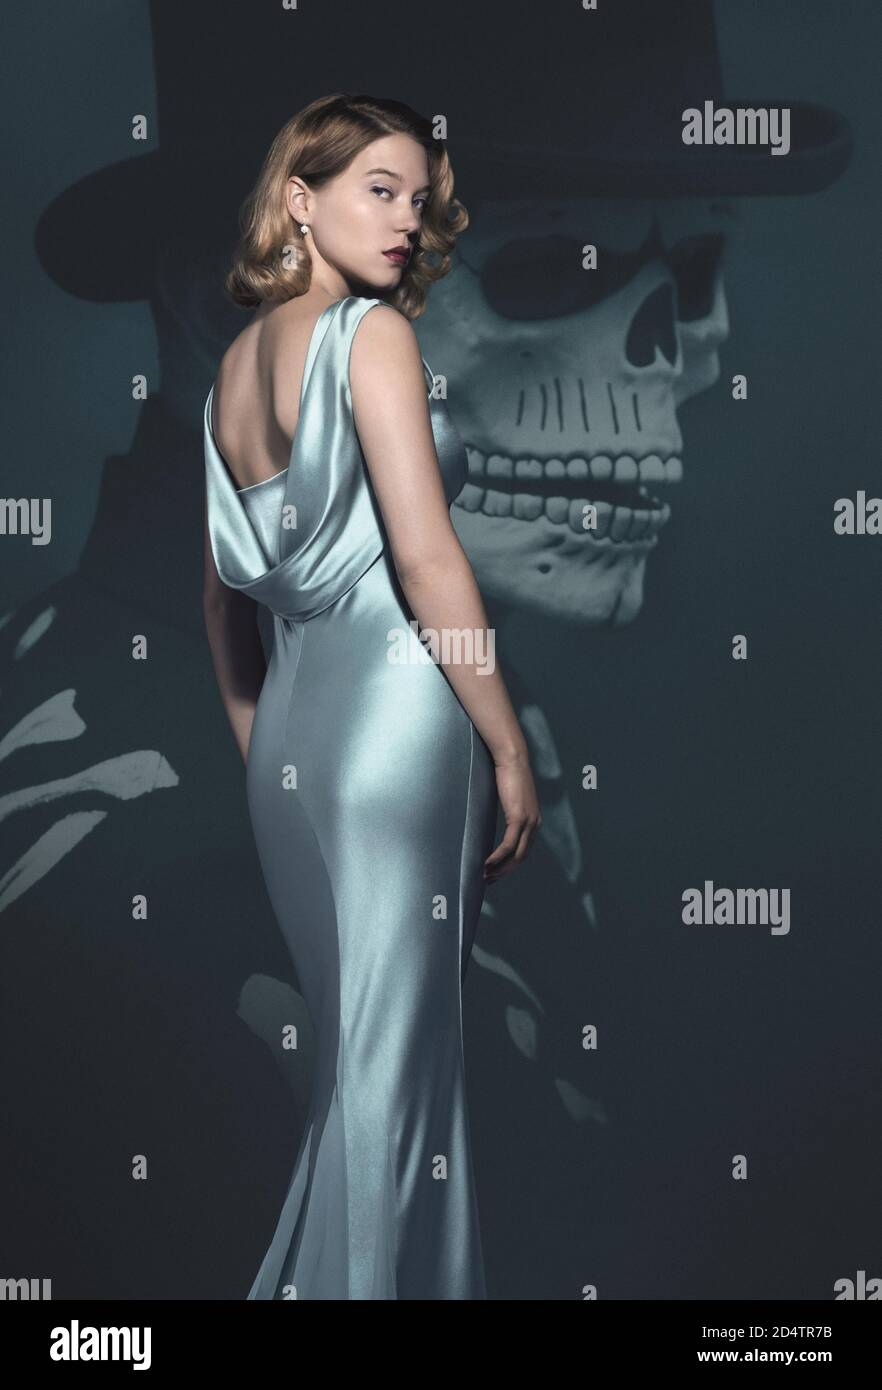 Lea Seydoux In Spectre 2015 Directed By Sam Mendes Credit Columbia Pictures Album Stock Photo Alamy